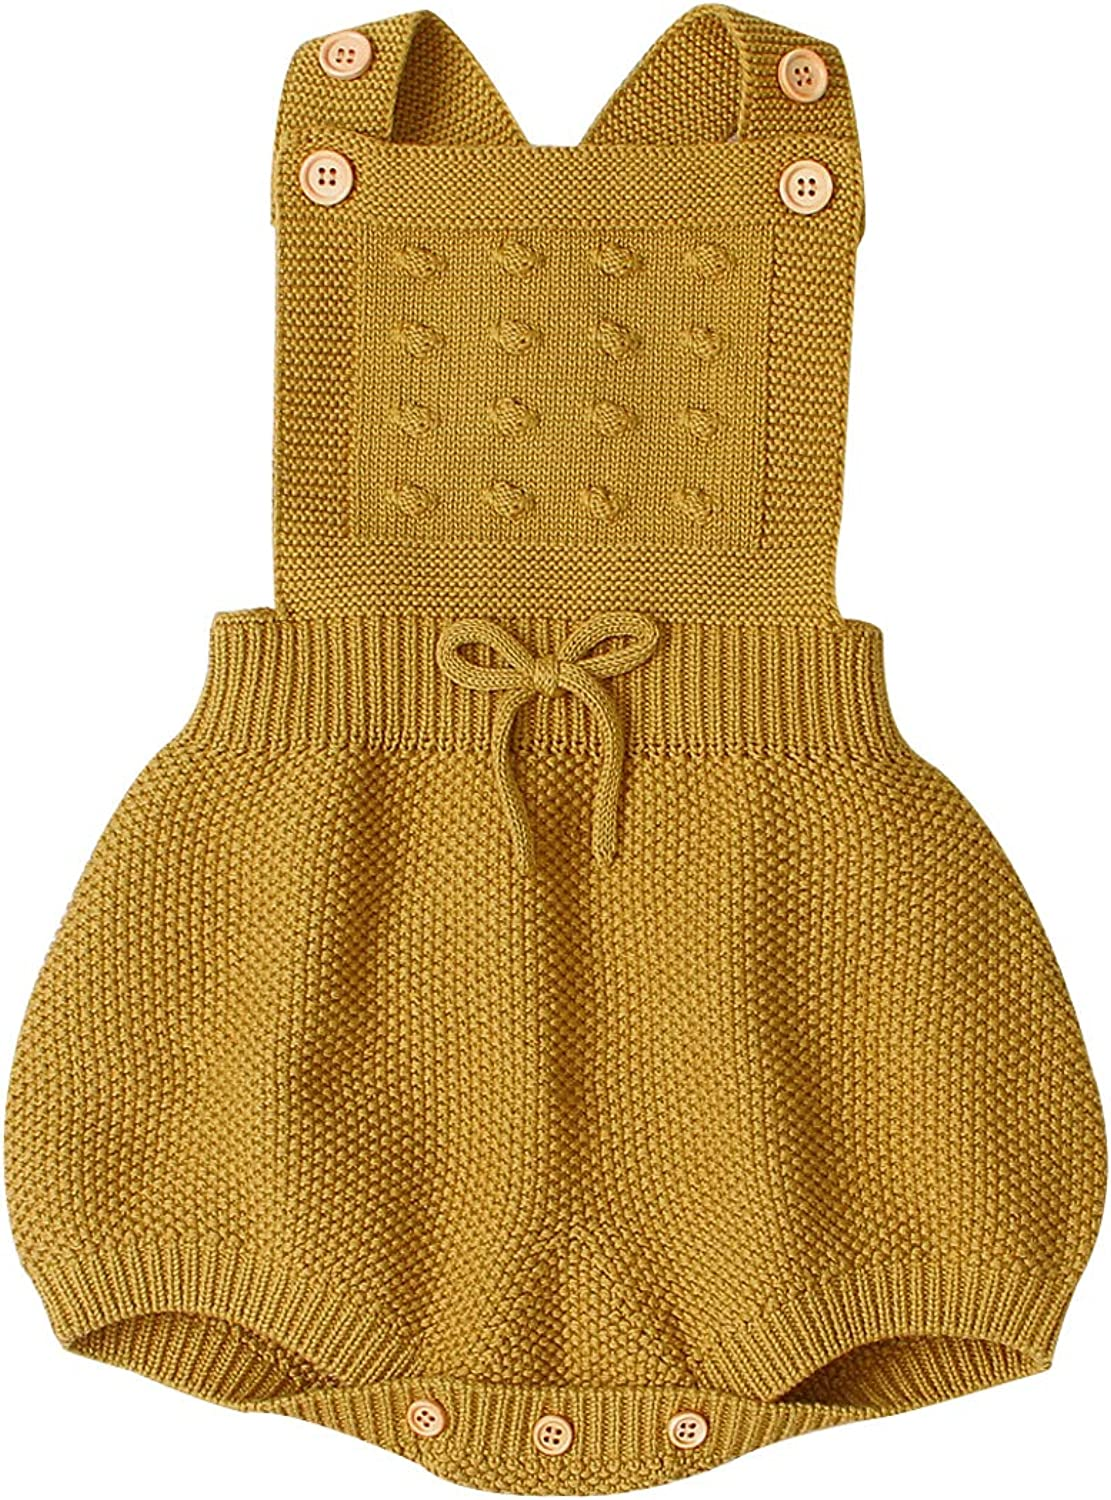 Eyiou Newborn Baby Knit Overalls Toddler Little Romper Rapid rise San Jose Mall Pho